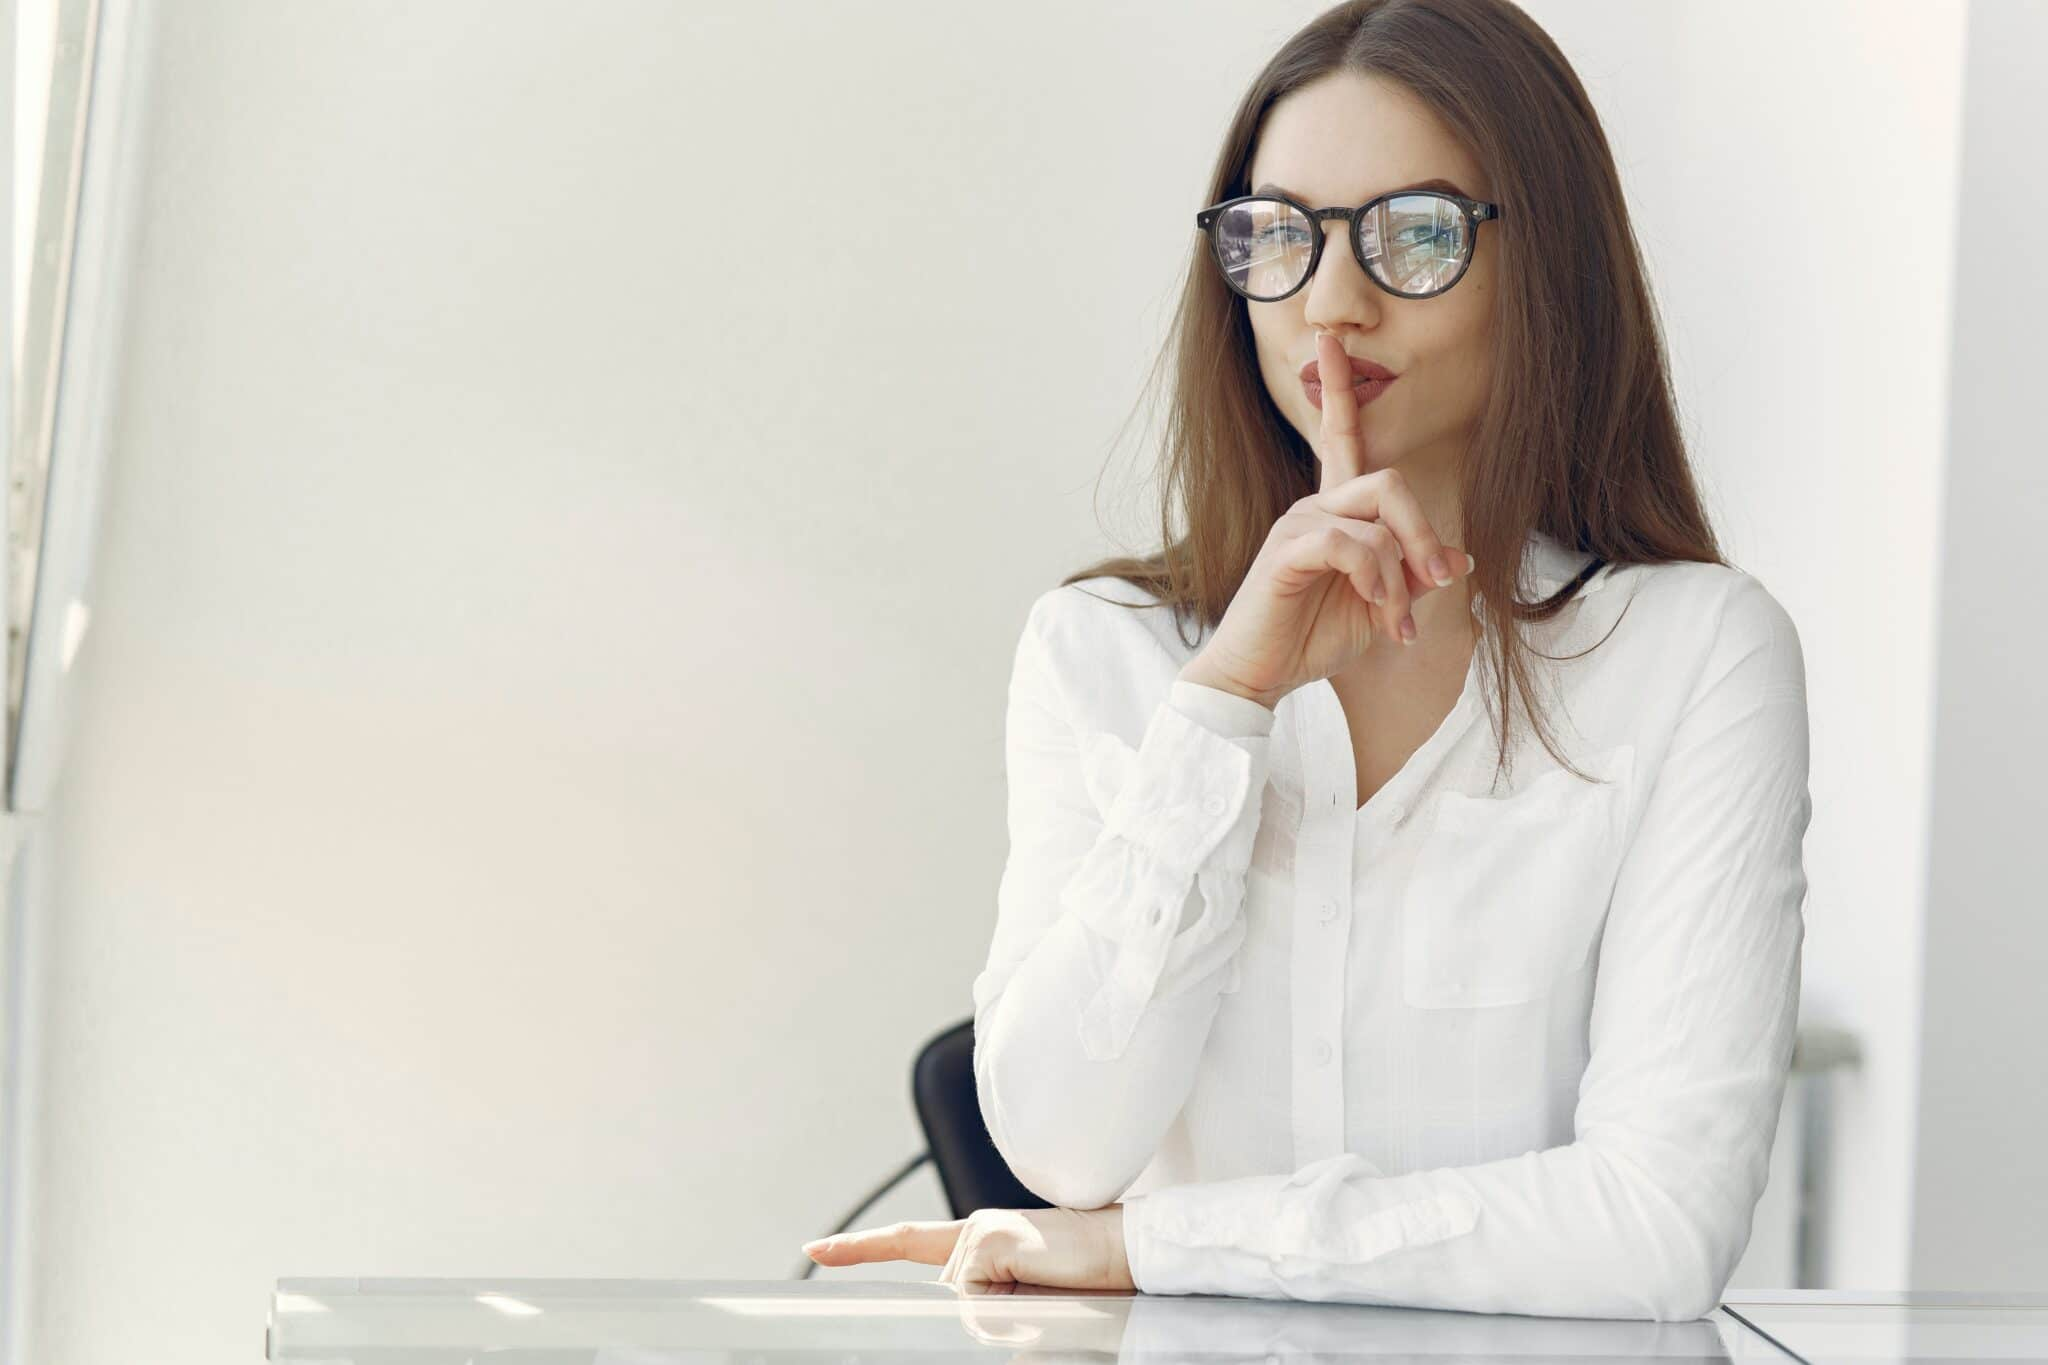 Don't keep any secrets from your workers comp doctor. Honesty is the best policy.